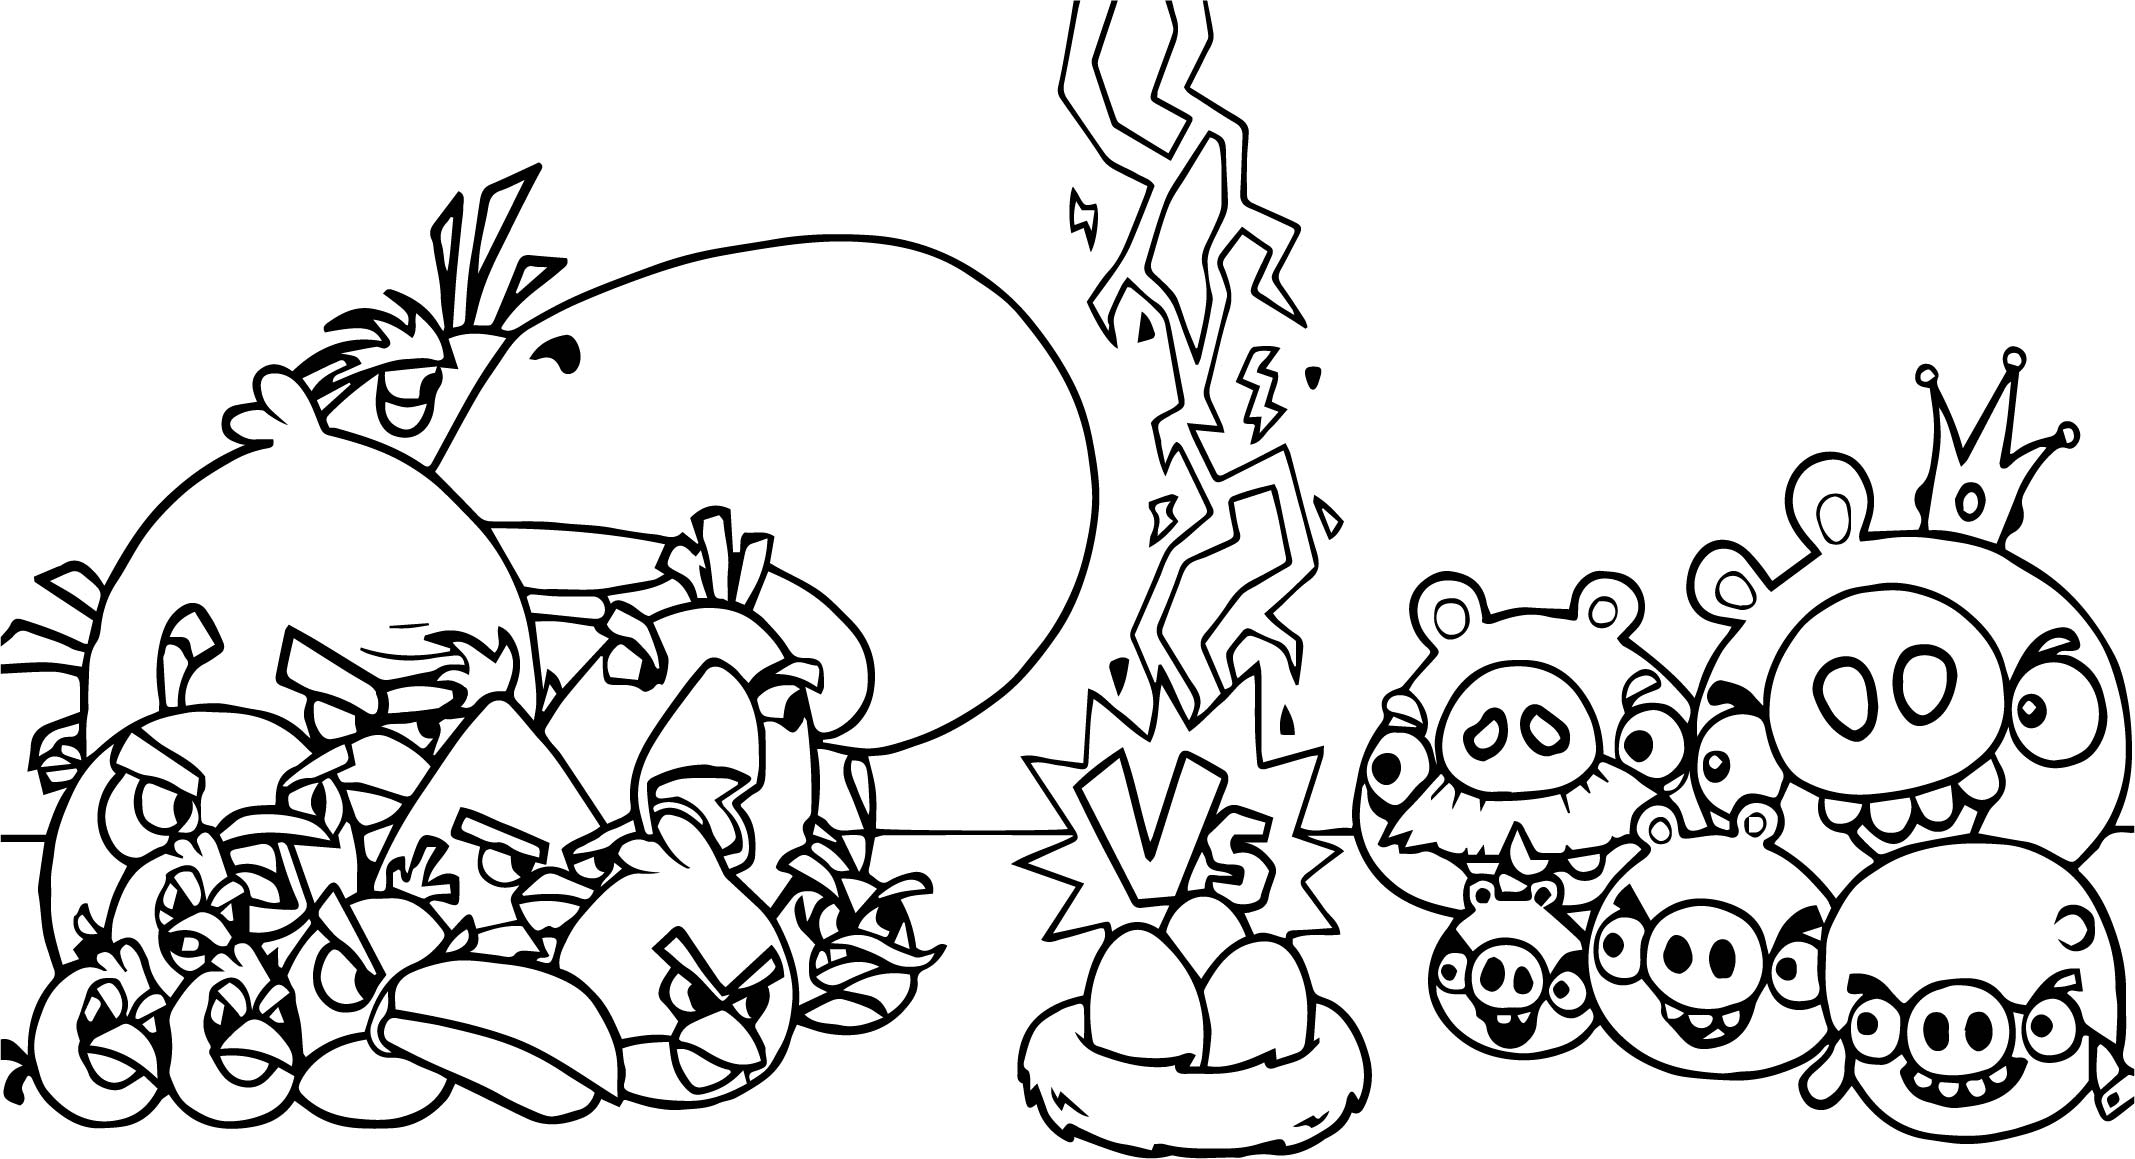 angry birds pictures to color kids page cartoon angry bird for preschool coloring pages pictures angry birds color to